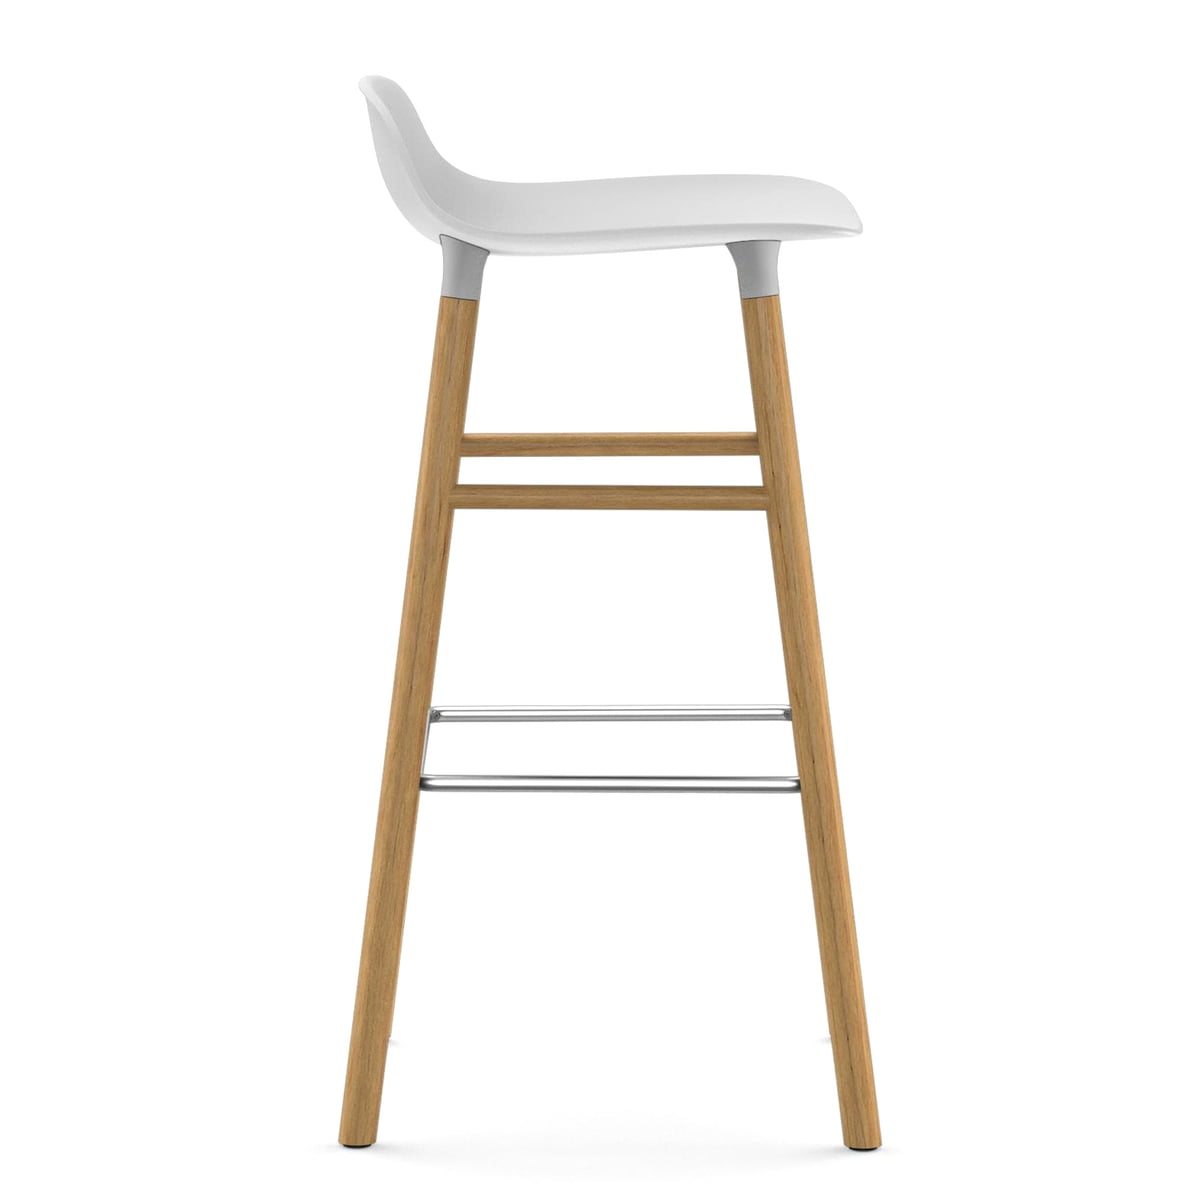 Form barhocker 75 cm holz von normann copenhagen for Barhocker normann copenhagen